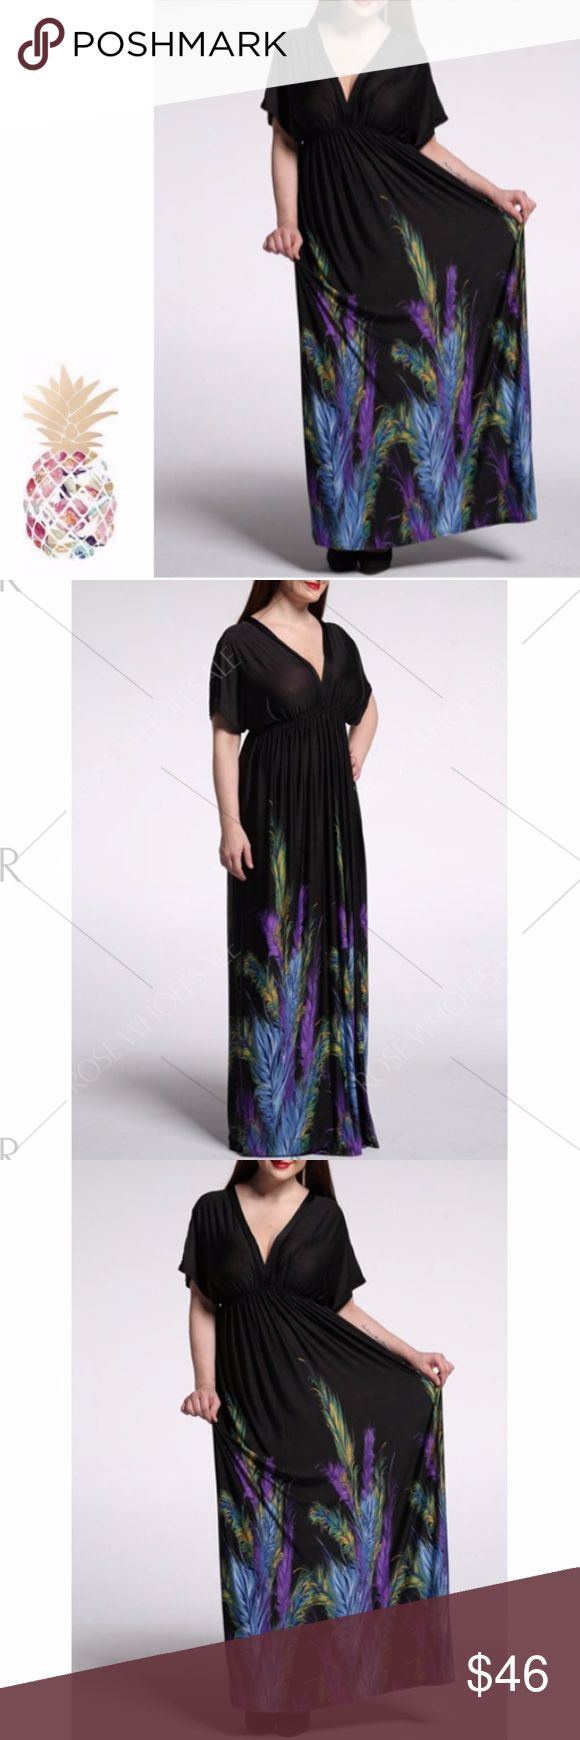 Cap Sleeve Backless Casual Summer Maxi Dress Cap Sleeve Backless Casual Summer Maxi Dress - Black 5xl Fit US Size:14,Length:57.87.(In inches) Style: Casual  Material: Polyester,Silk,Spandex  Silhouette: A-Line  Dresses Length: Floor-Length  Neck-line: Plunging Neck  Sleeves Length: Short Sleeves  Pattern Type: Print  With Belt: No SOLD--SOLD--SOLD-- Dresses Maxi